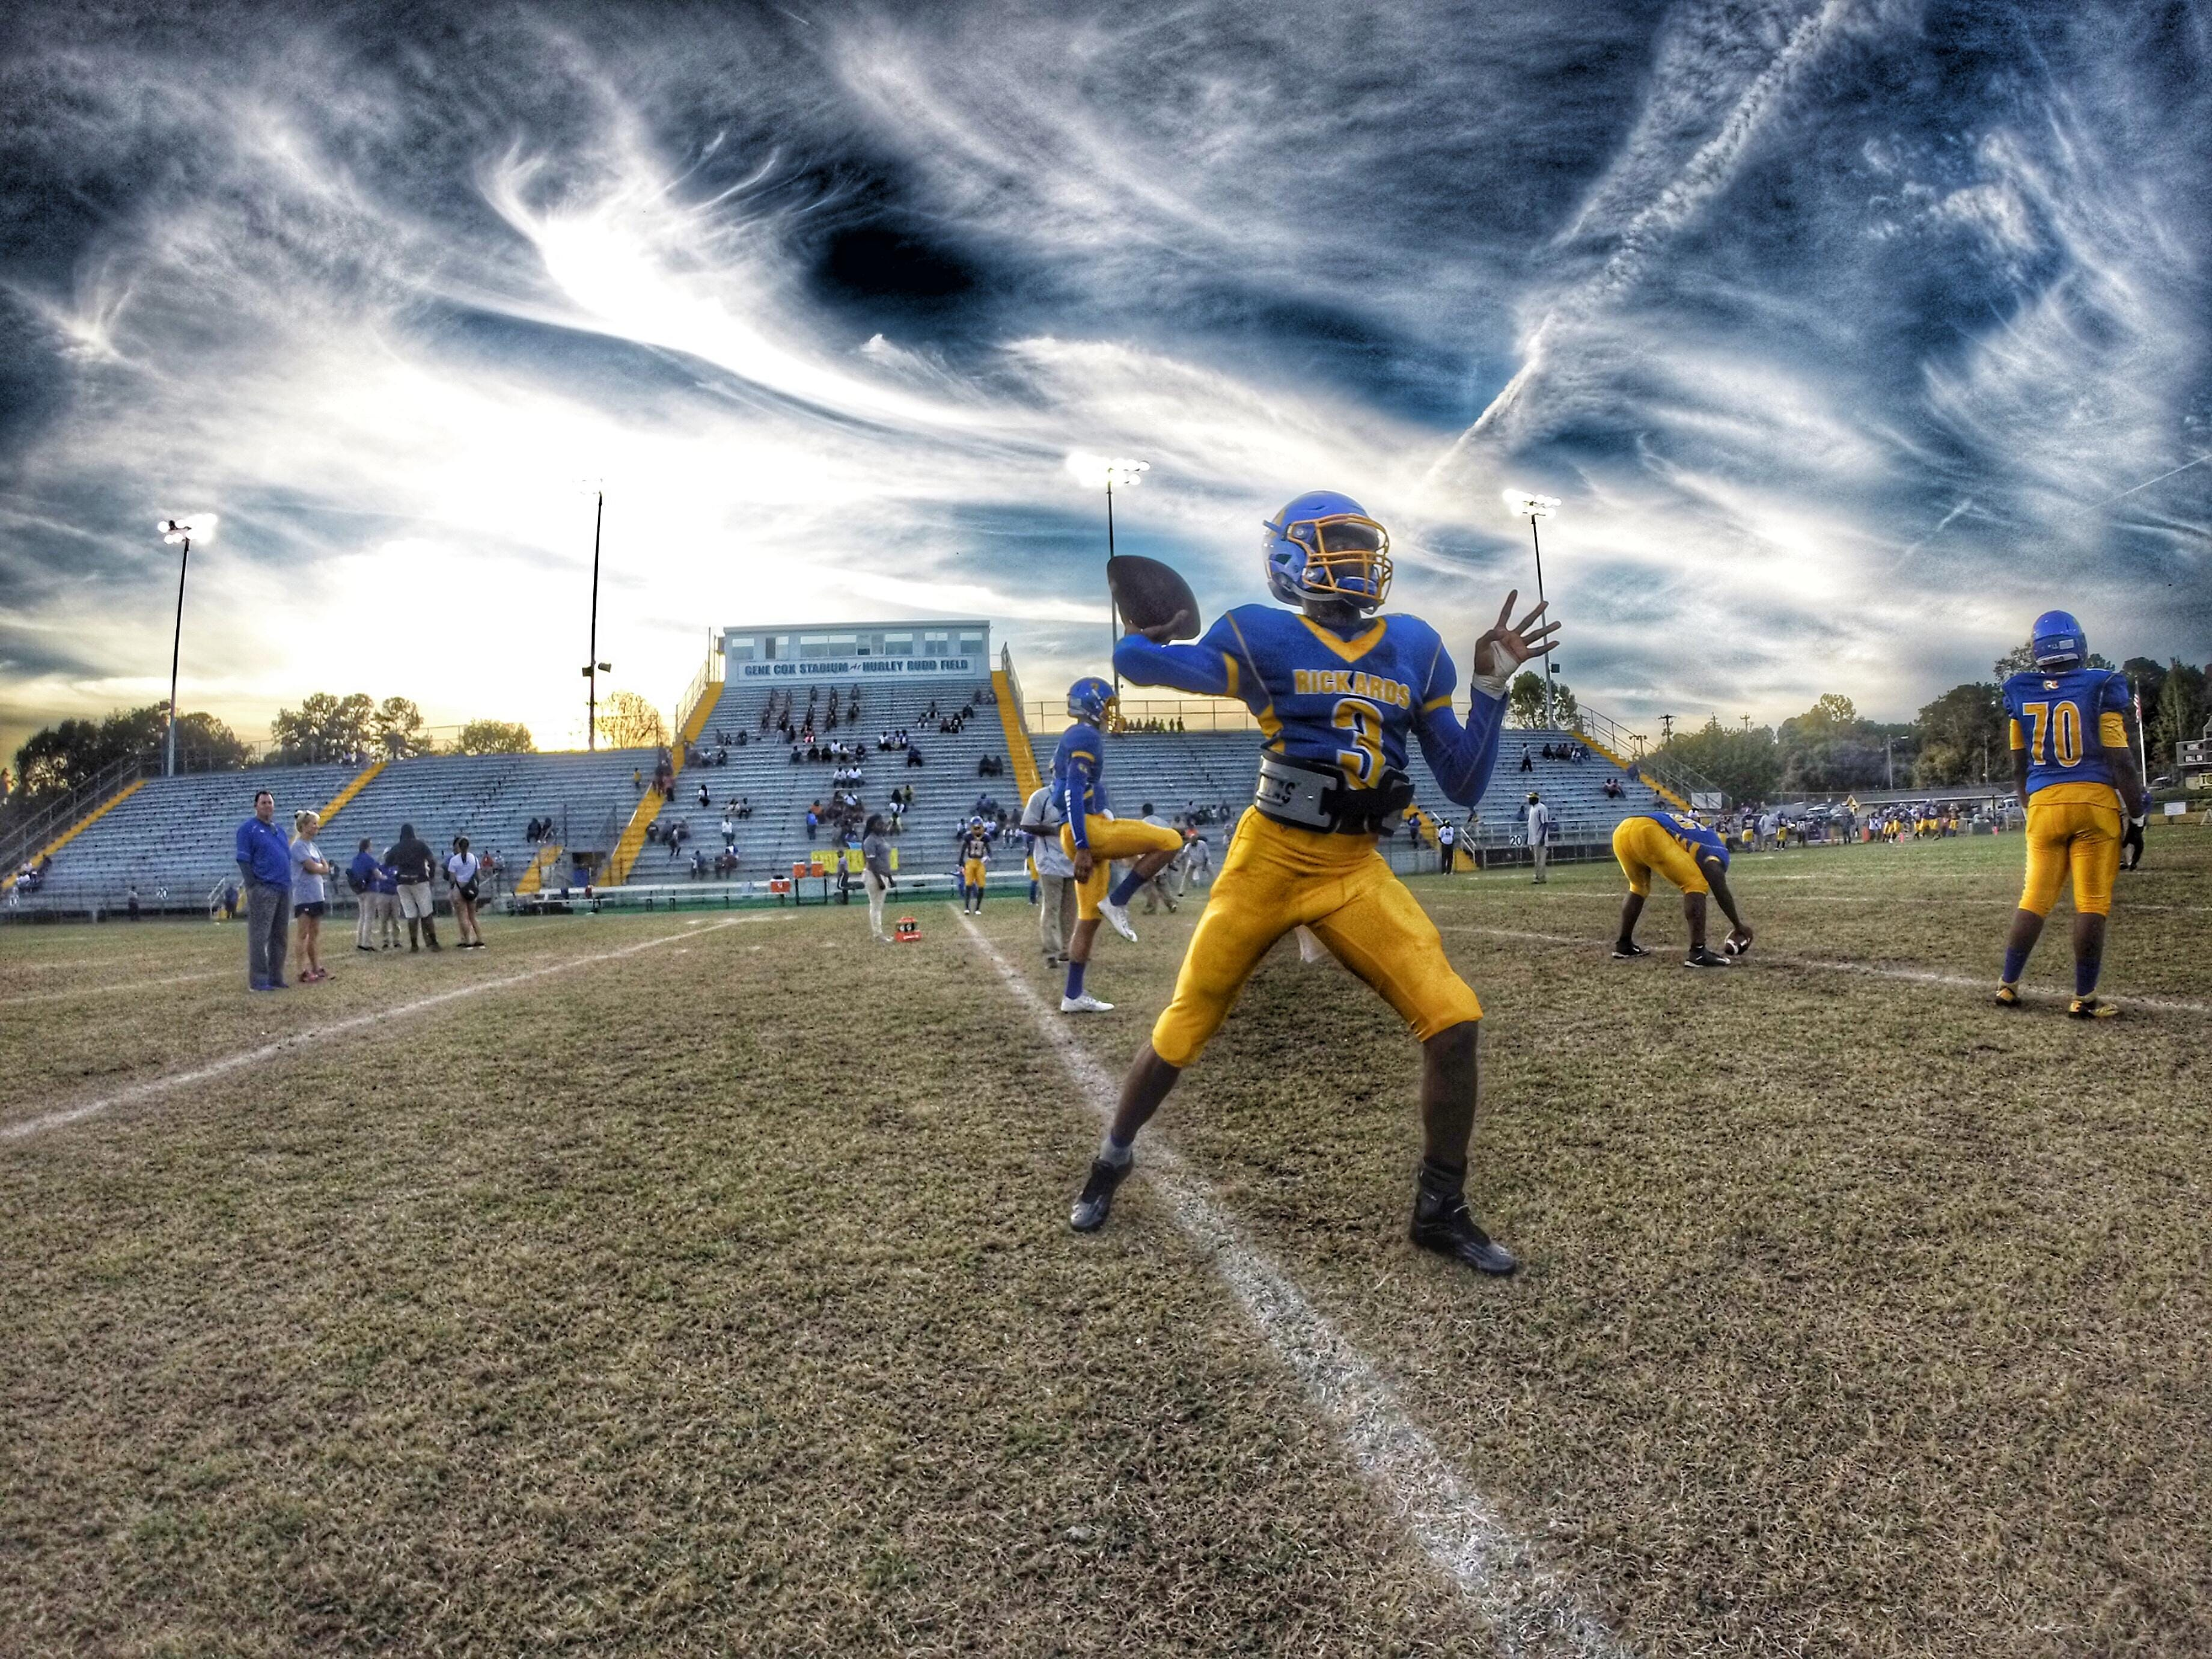 Rickards quarterback Marcus Riley will lead the No. 2 Raiders (7-2) into a first-round playoff game at West Florida Tech (6-4).